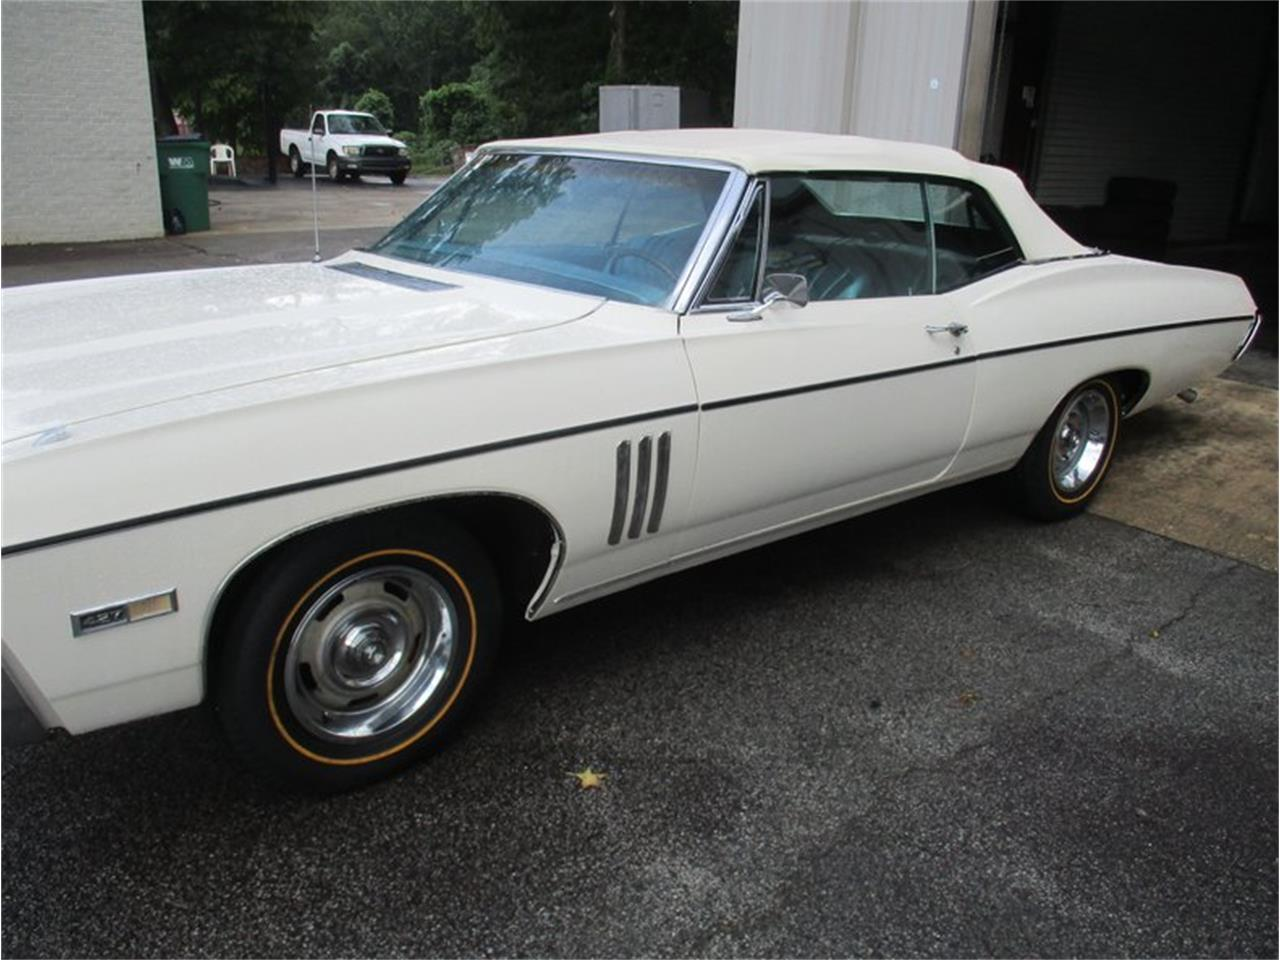 1968 Chevrolet Impala (CC-1410168) for sale in Greensboro, North Carolina